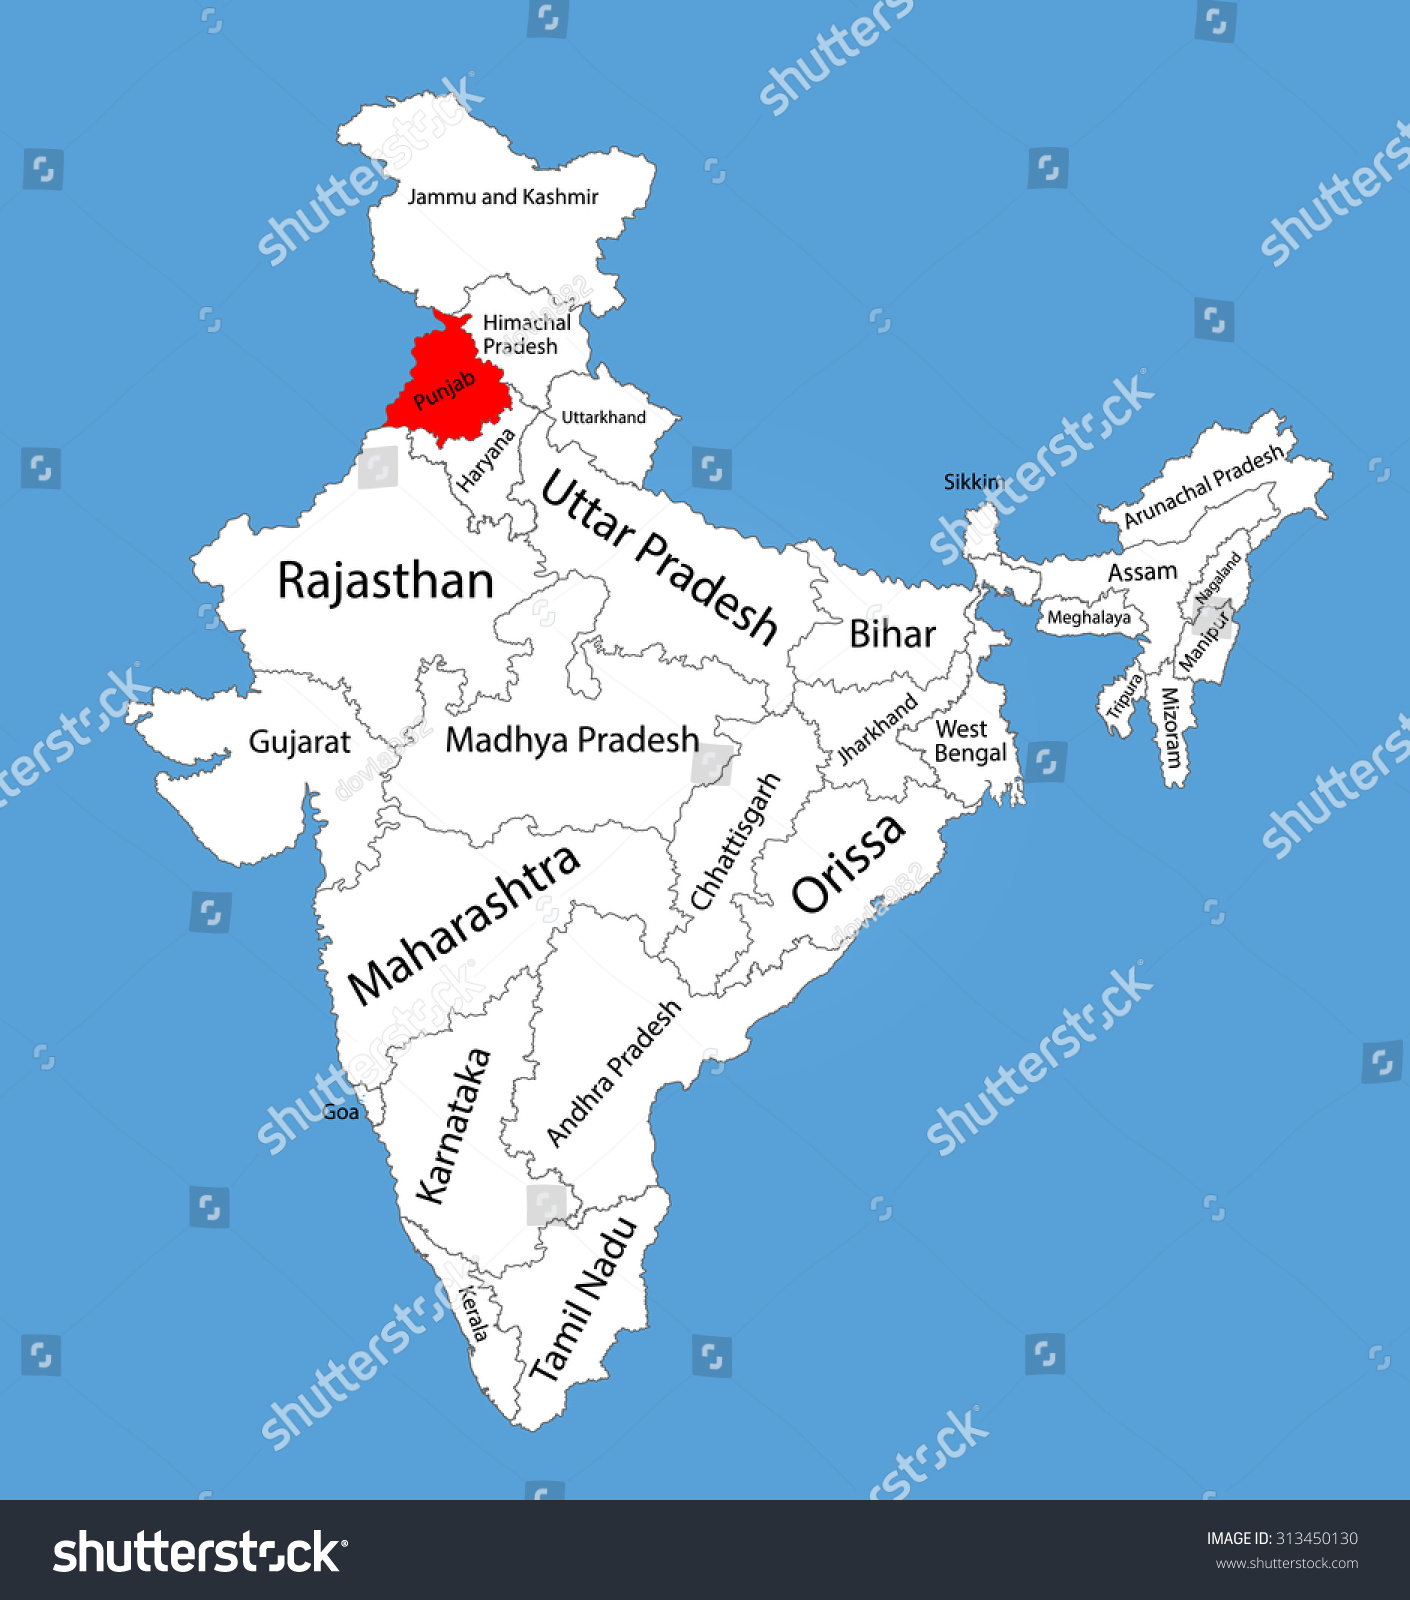 Punjab state india vector map silhouette stock vector 313450130 punjab state india vector map silhouette illustration isolated on india map editable blank buycottarizona Gallery